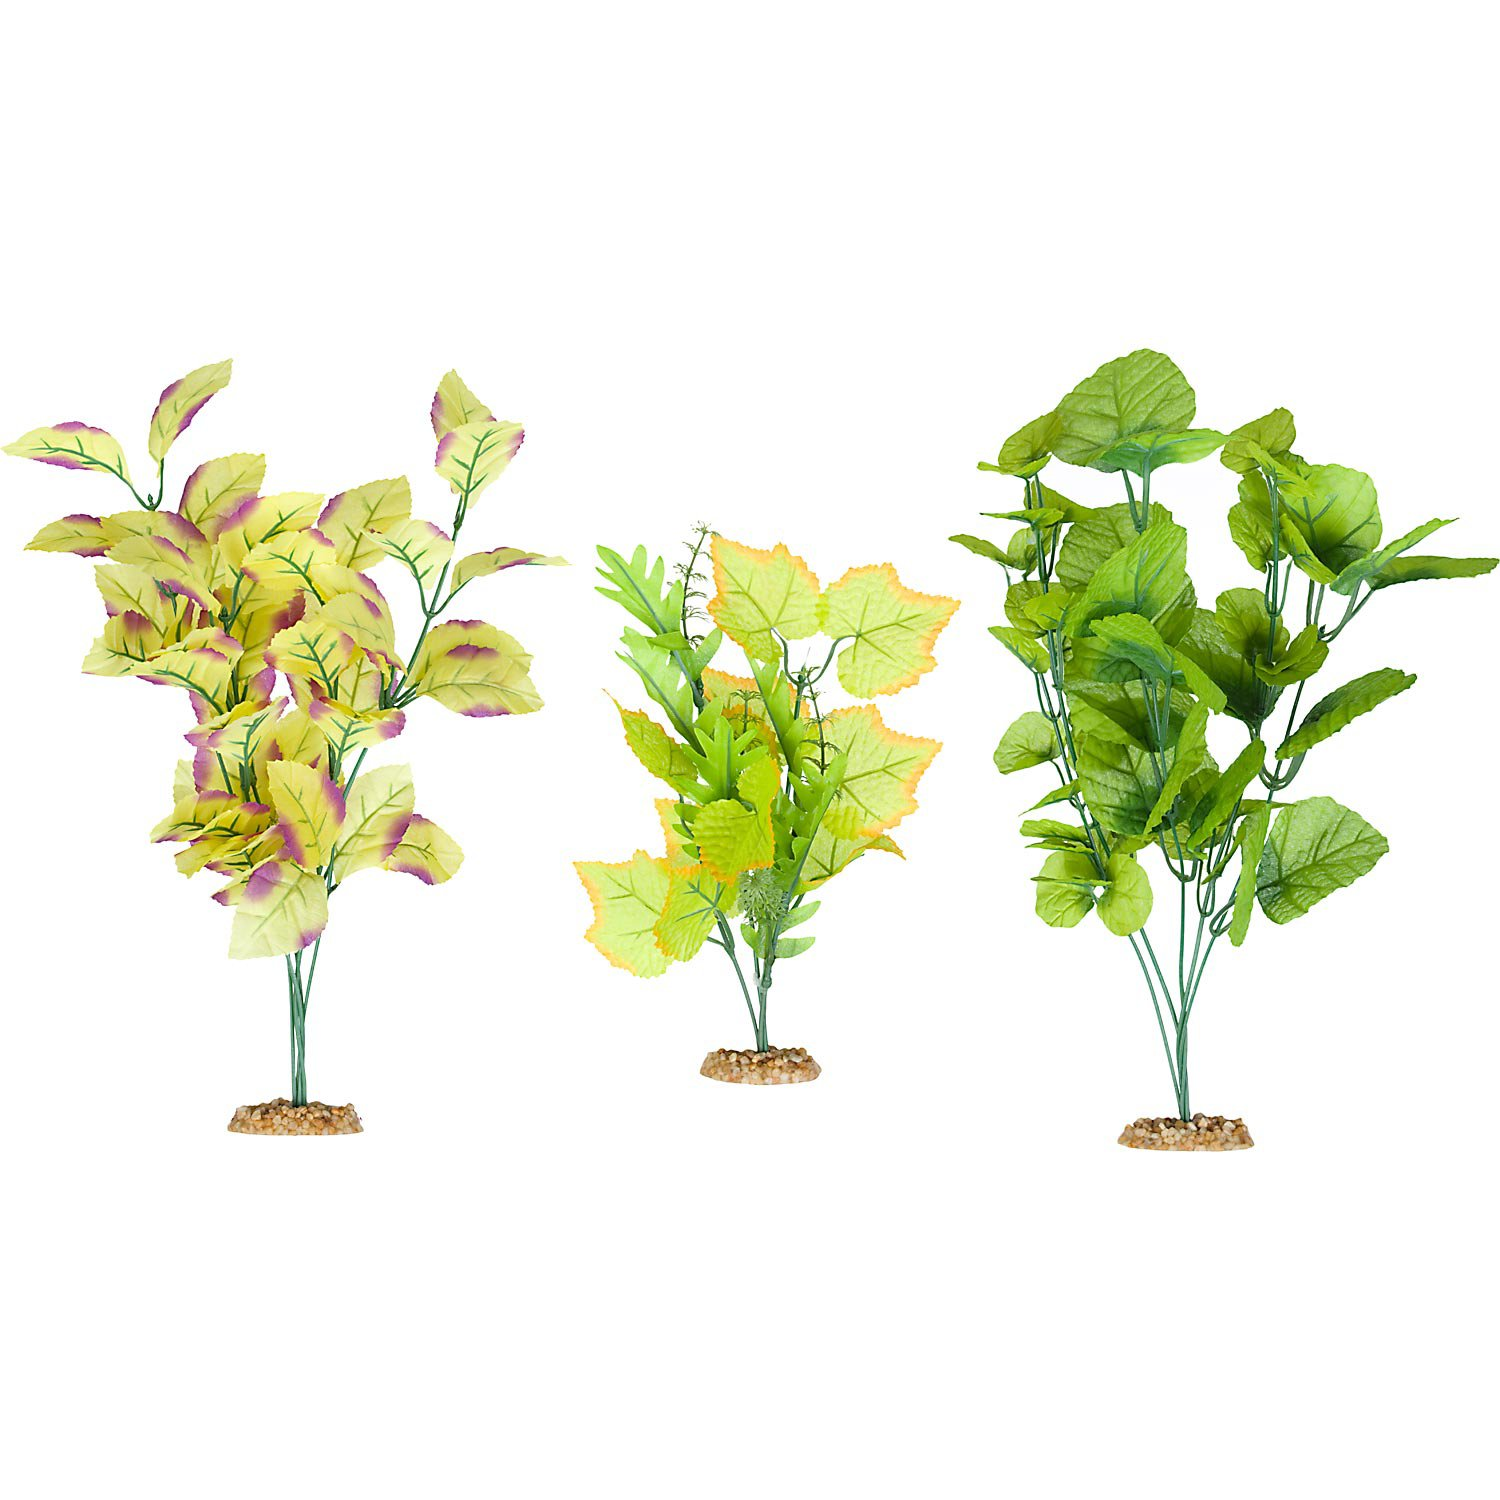 Imagitarium Background Plant Multi-Pack Silk Aquarium Plants | Petco